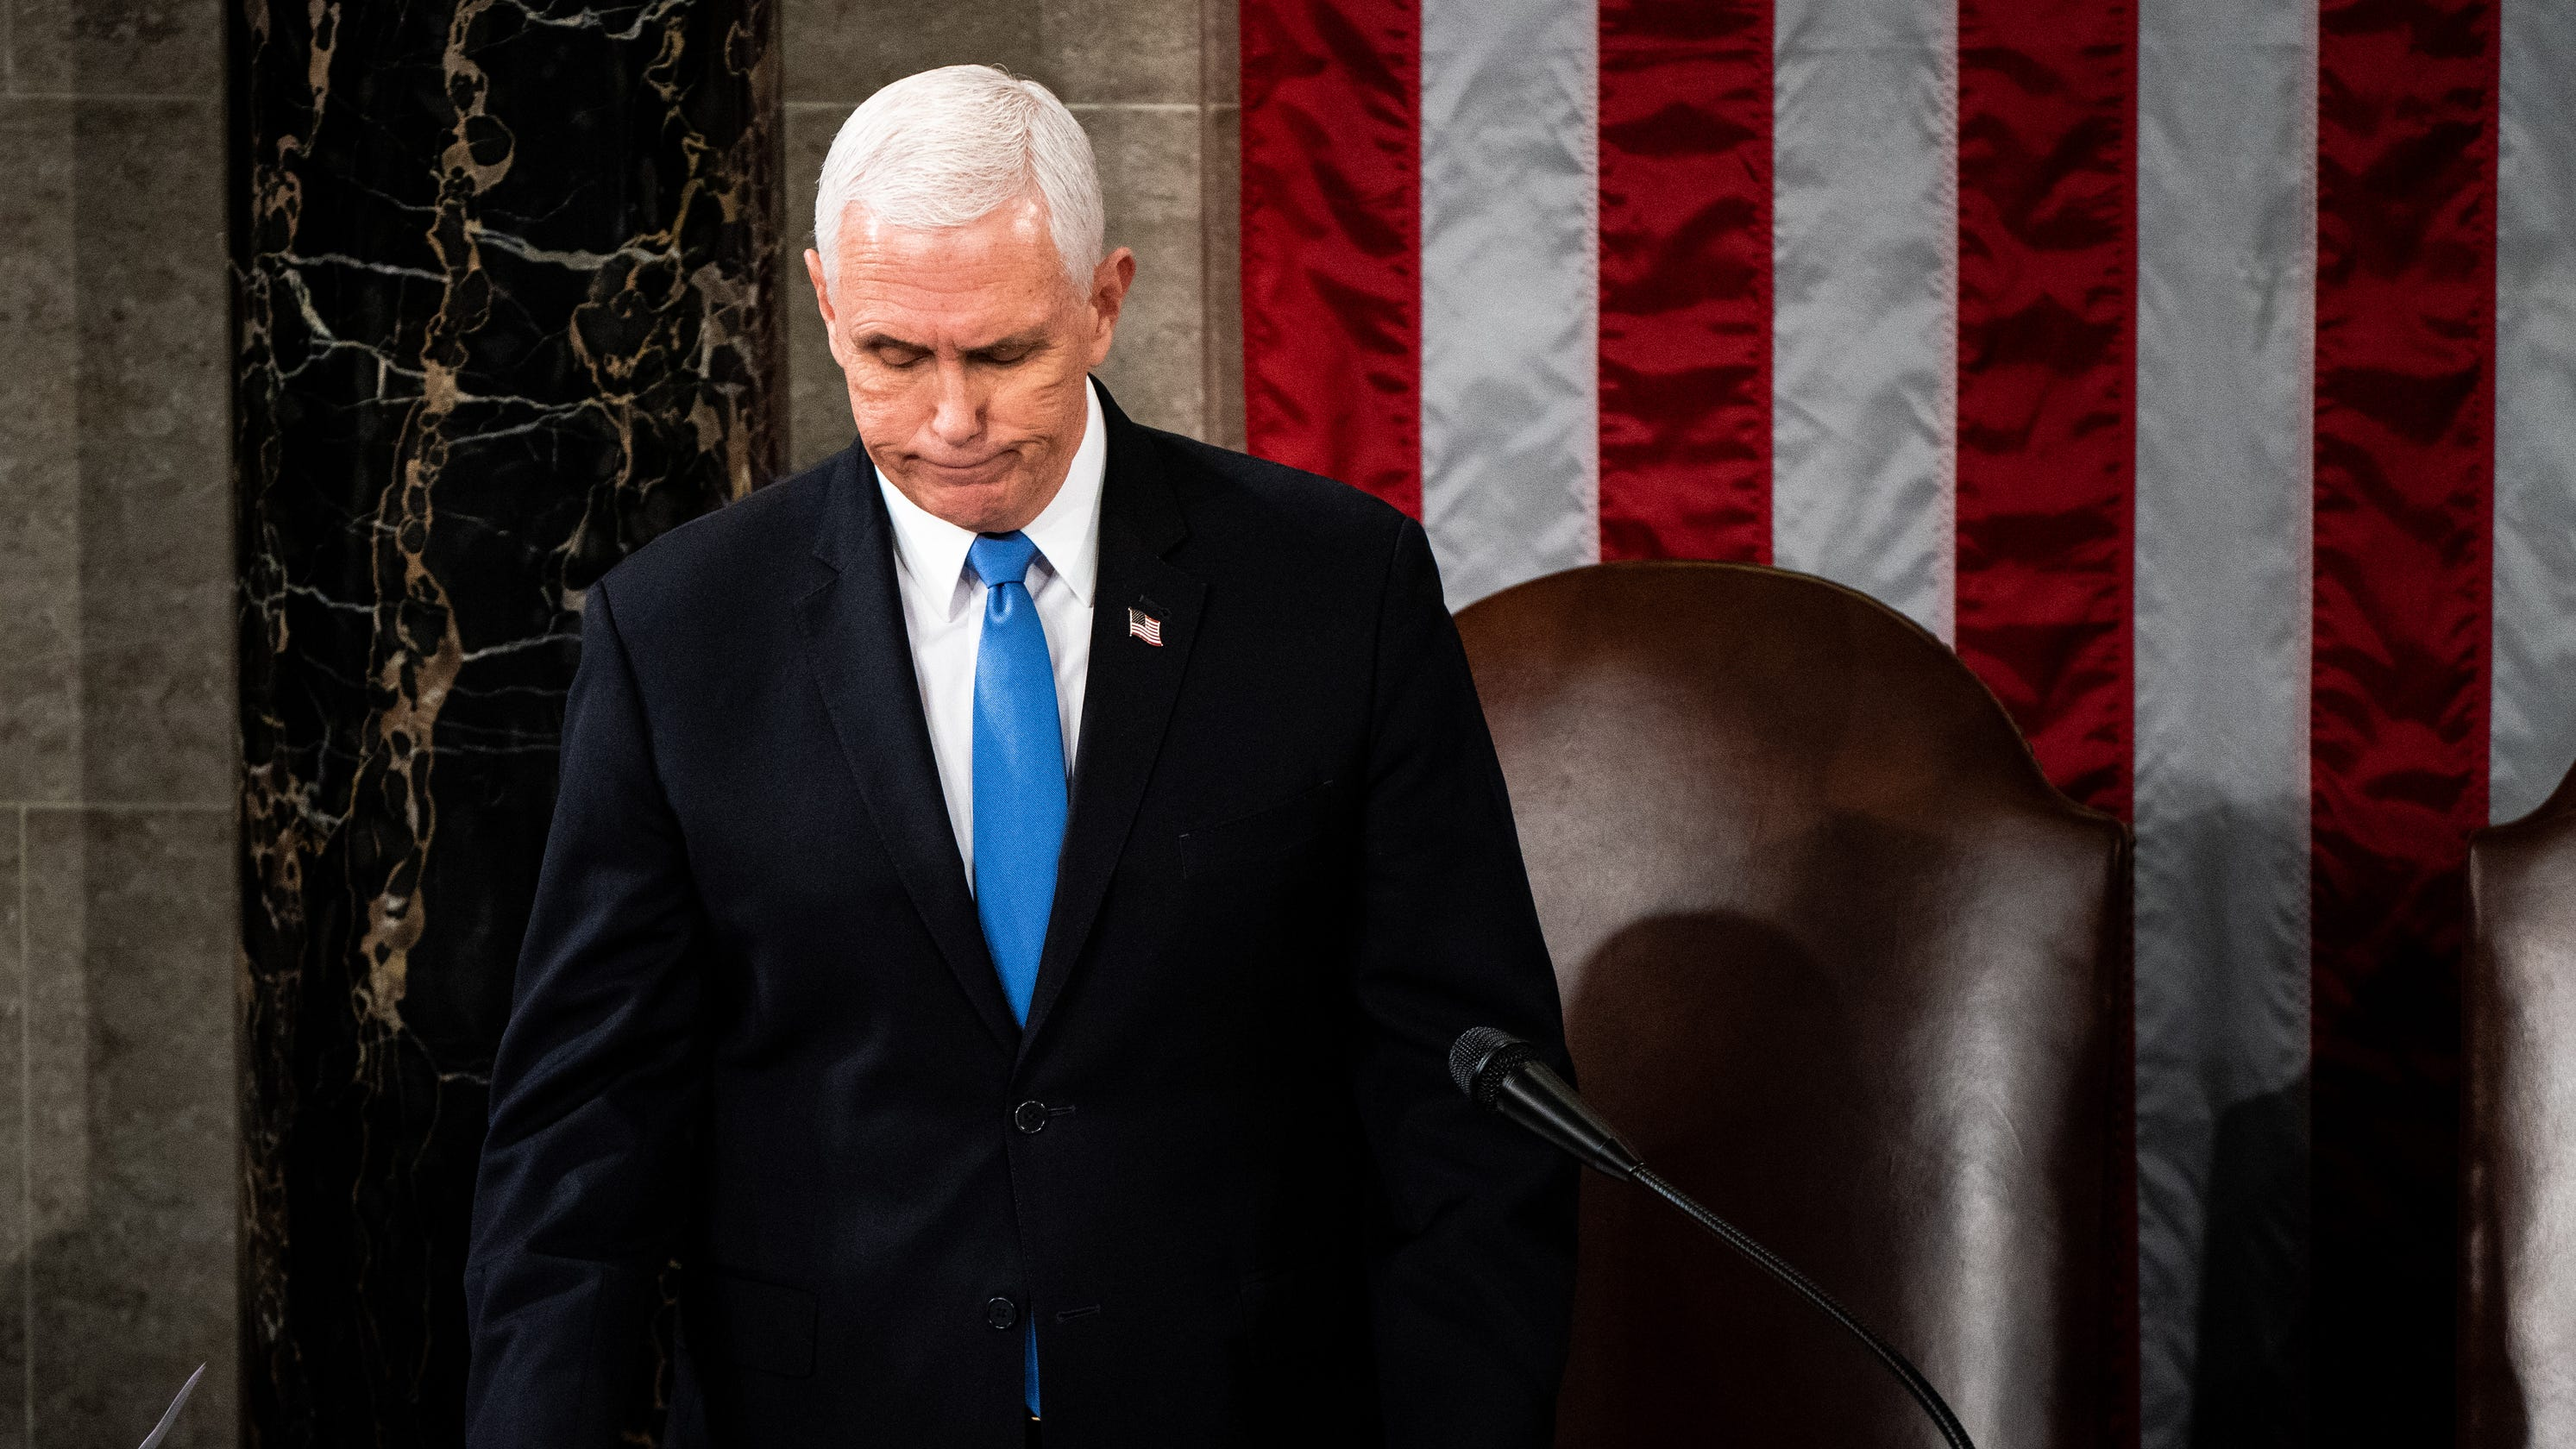 An 'angry' Pence navigates the fallout of his rupture with Trump over election, Capitol riots - USA TODAY